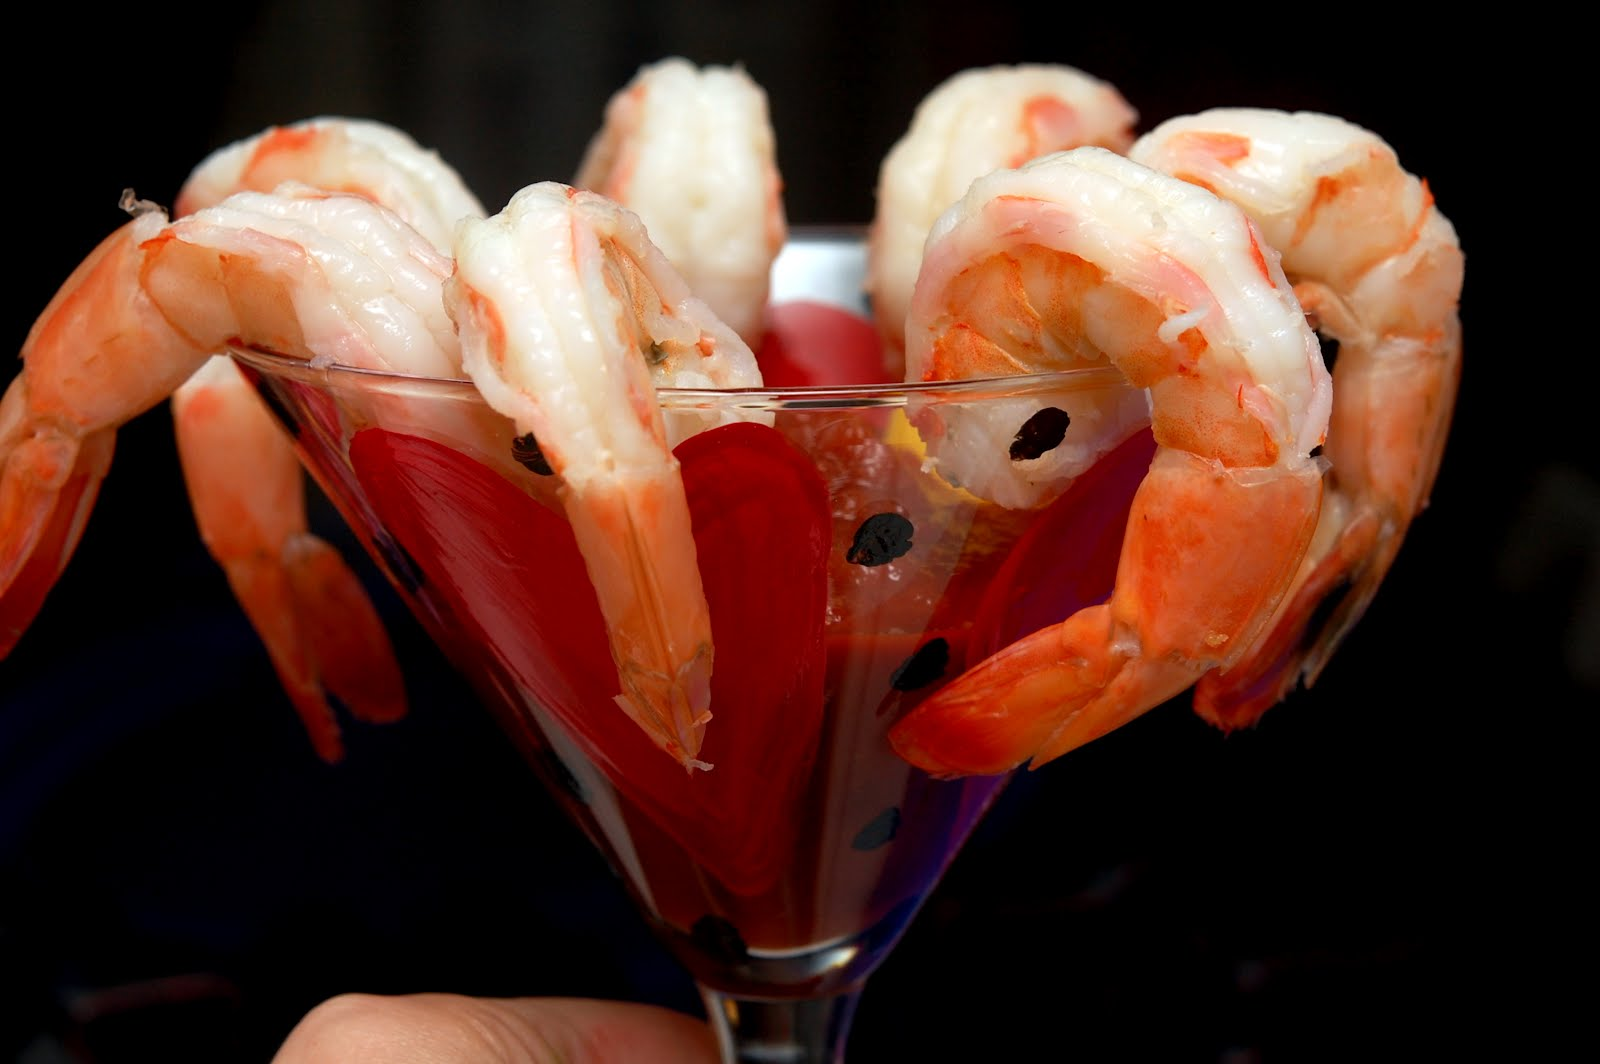 GLUTEN FREE HUGS & COOKIES XO: SHRIMP COCKTAIL!!!!!